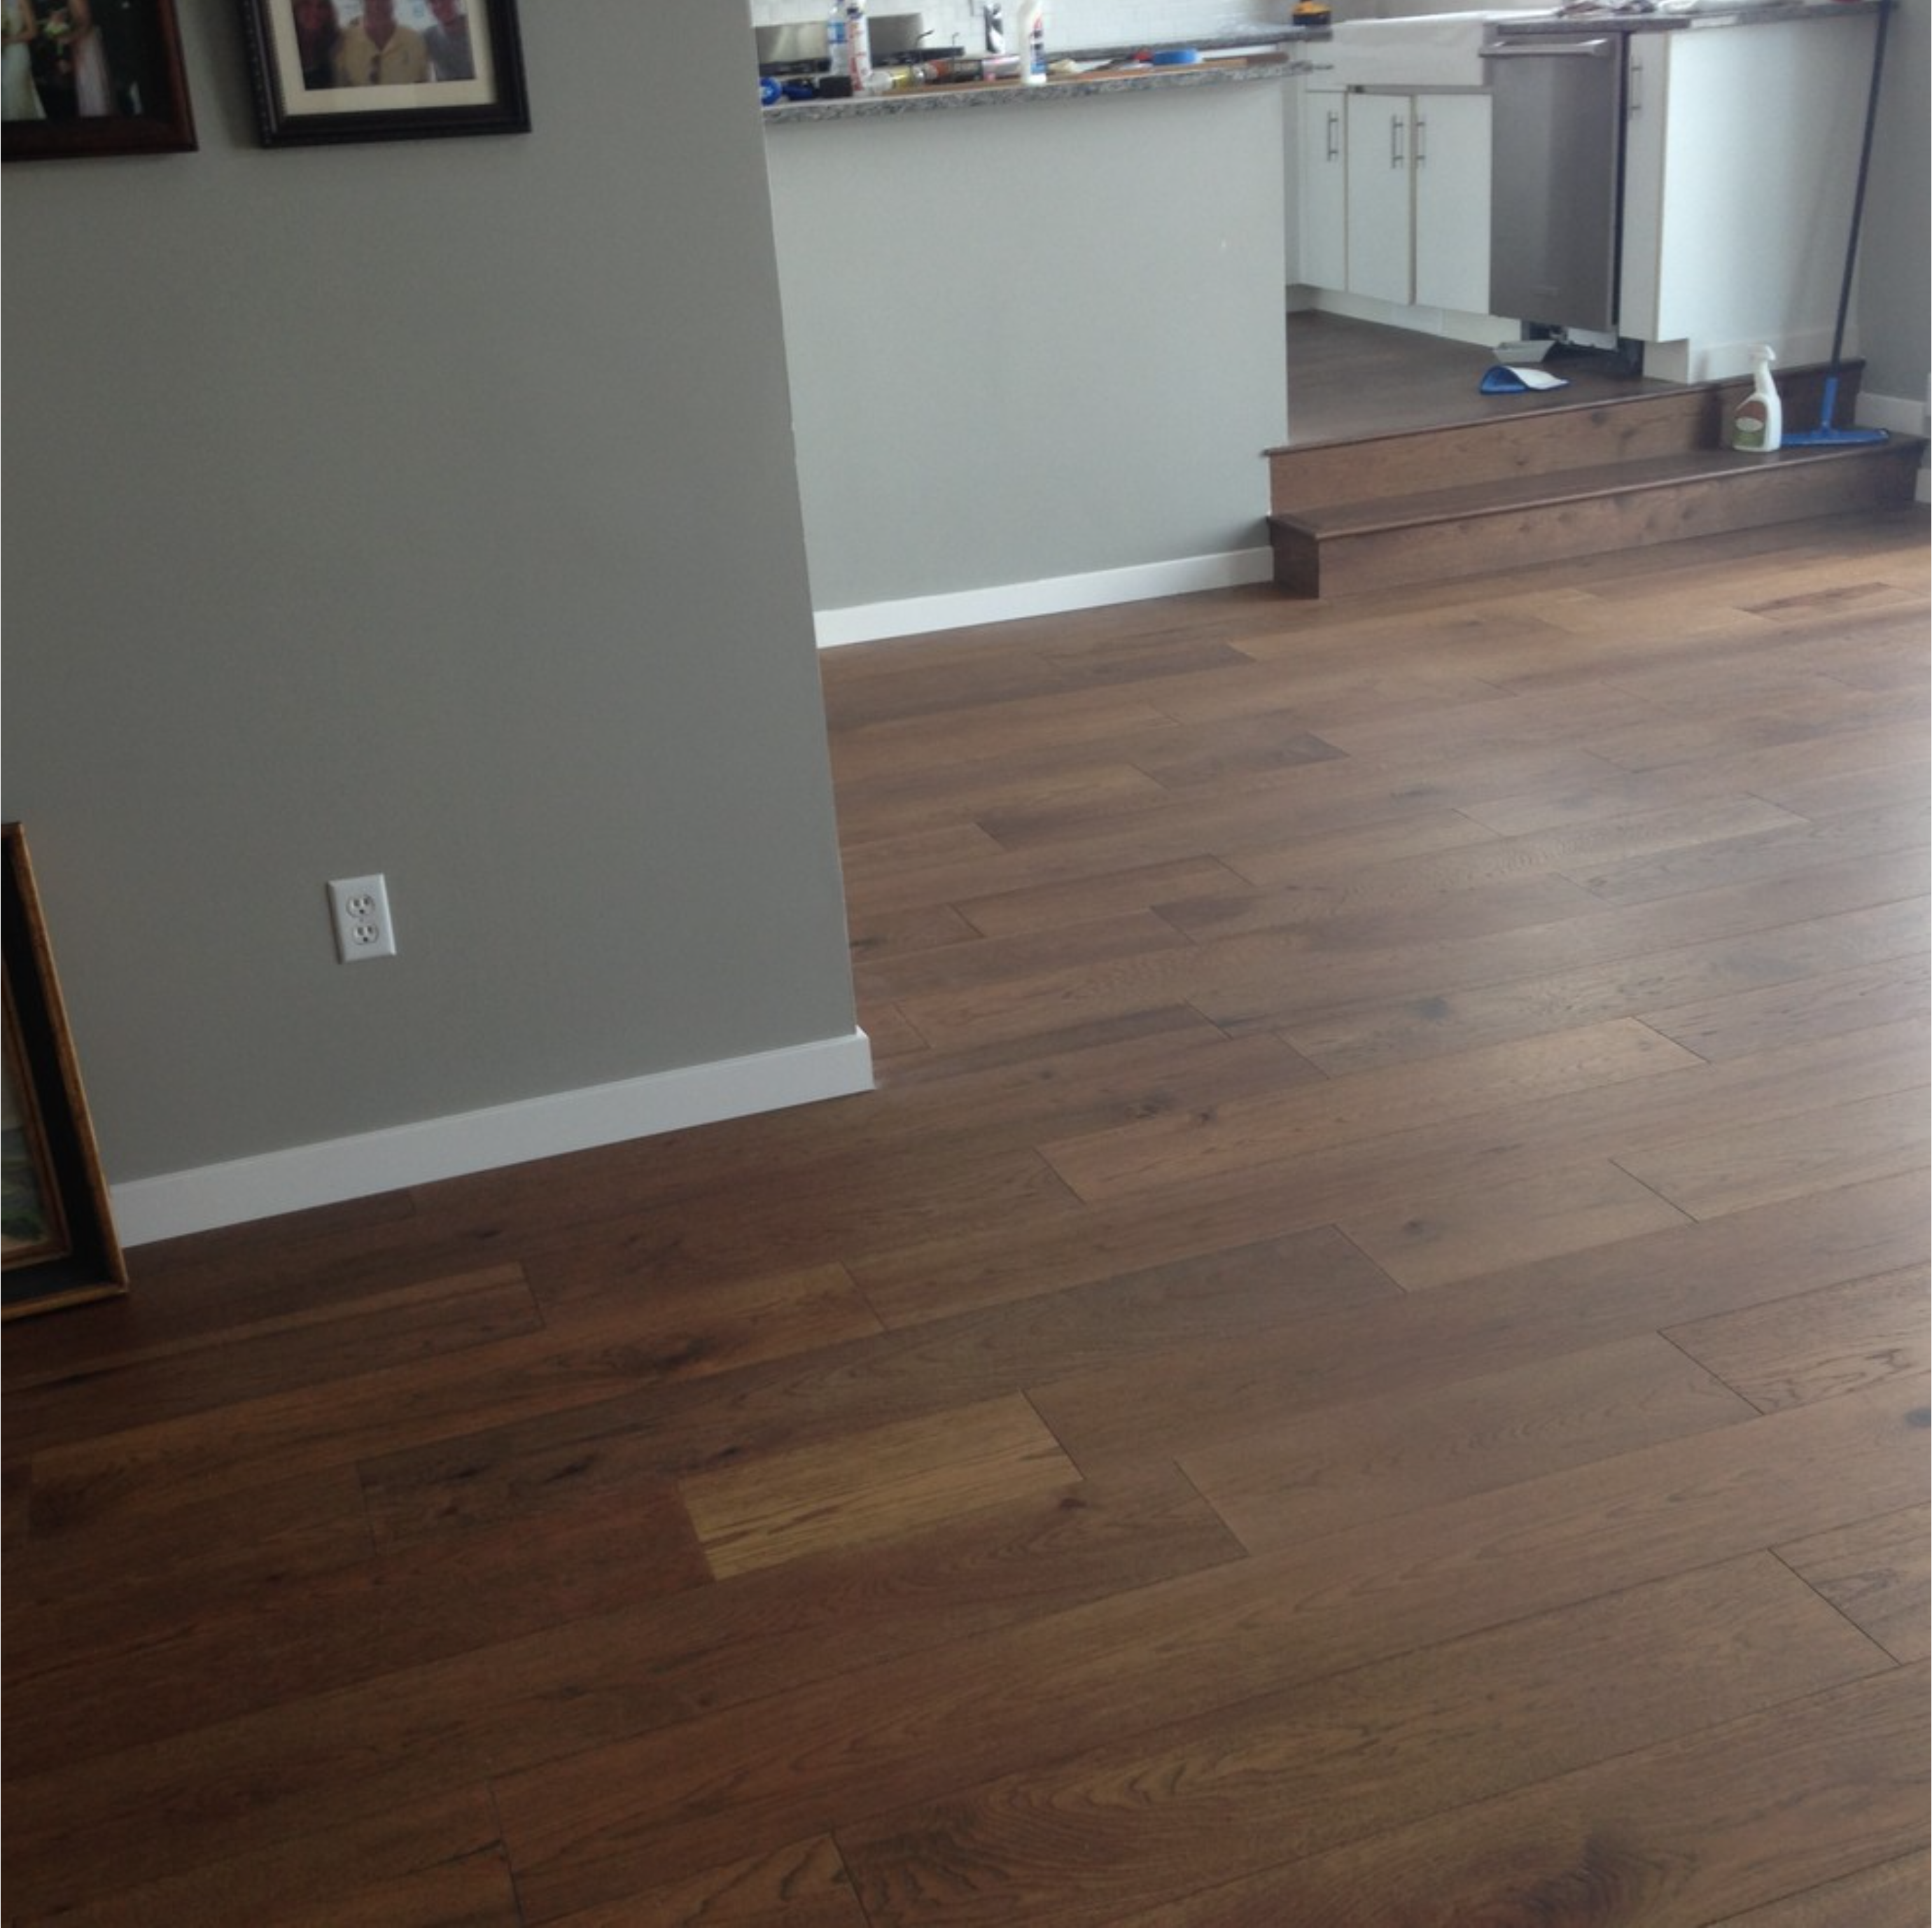 Gallery32 perfect floor chicago for Laminate flooring chicago